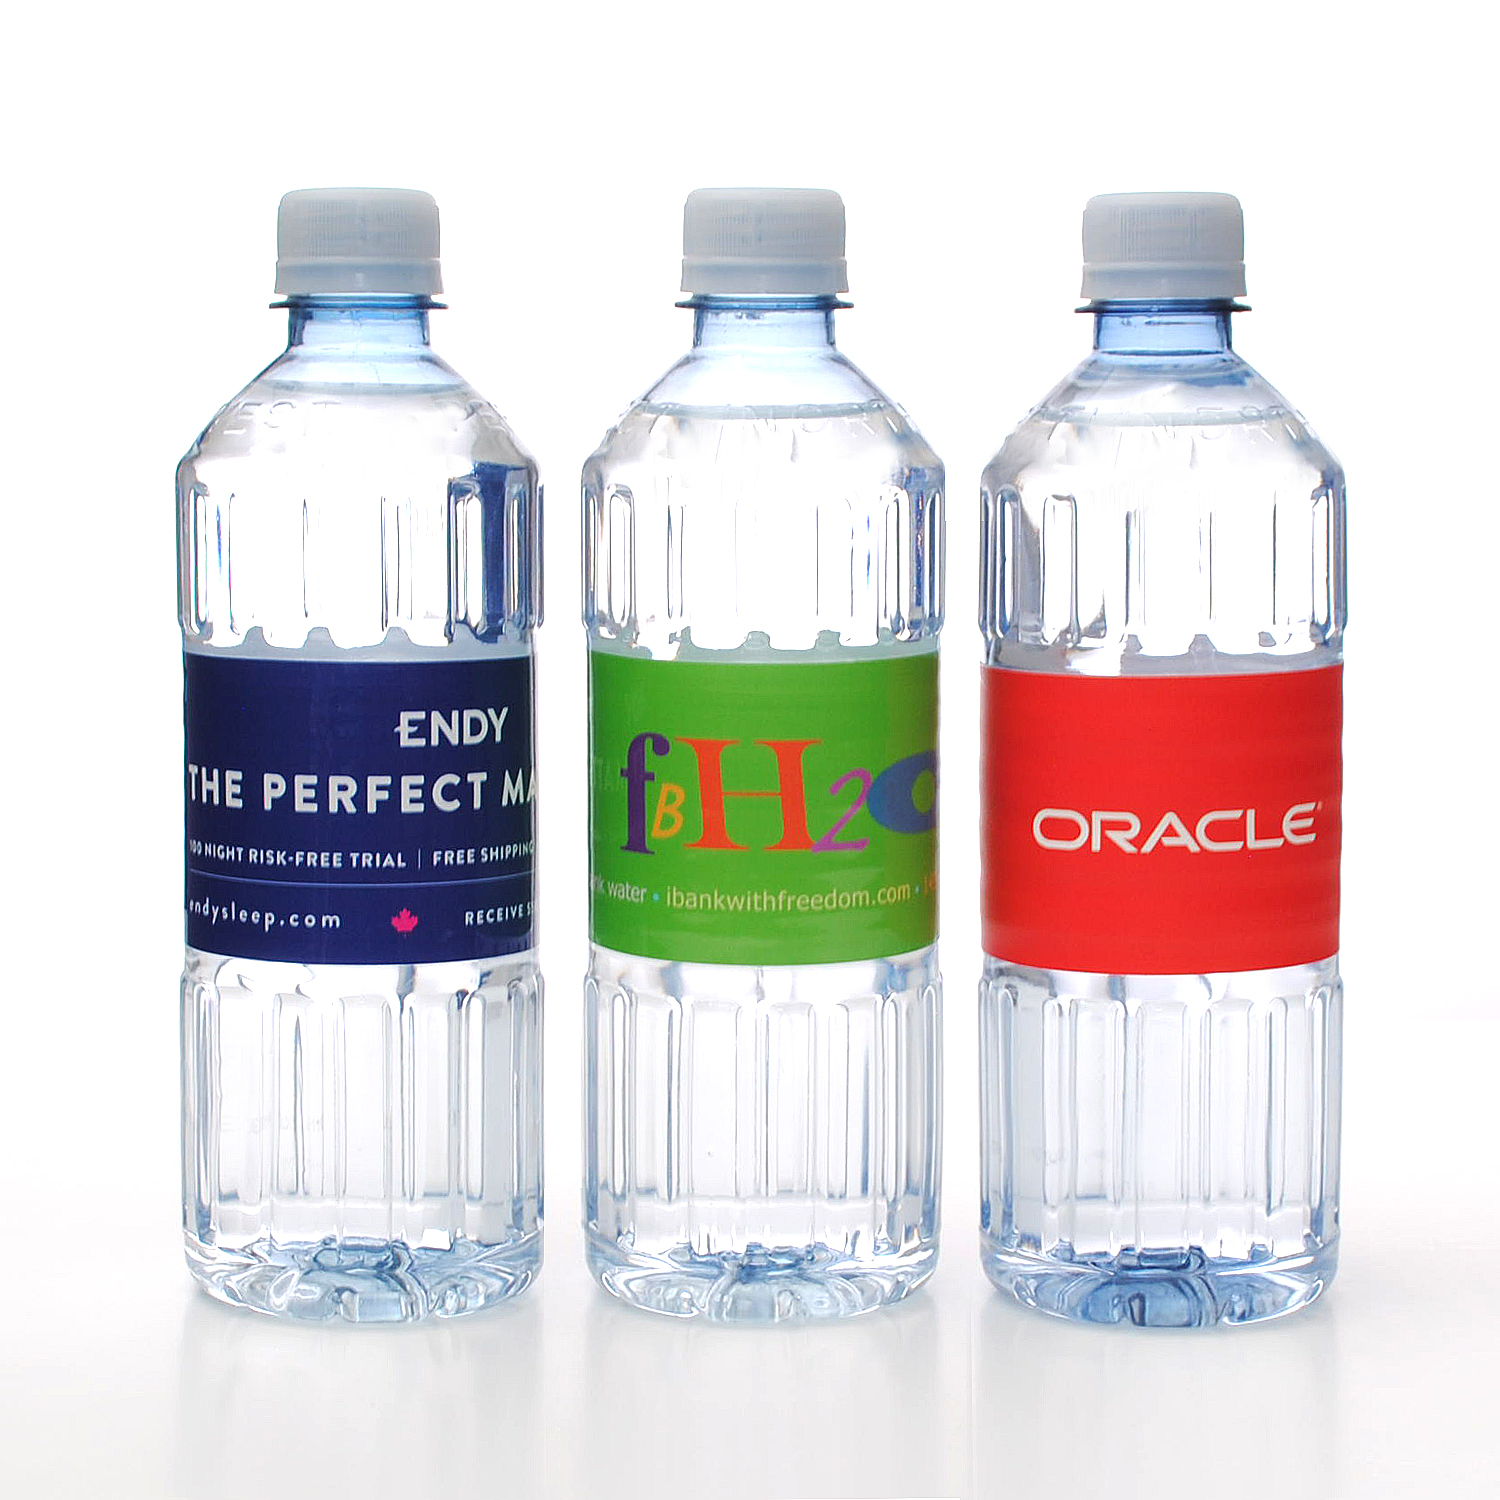 Private label bottled water made from recycled #1 rPET plastic using reduced energy practices.